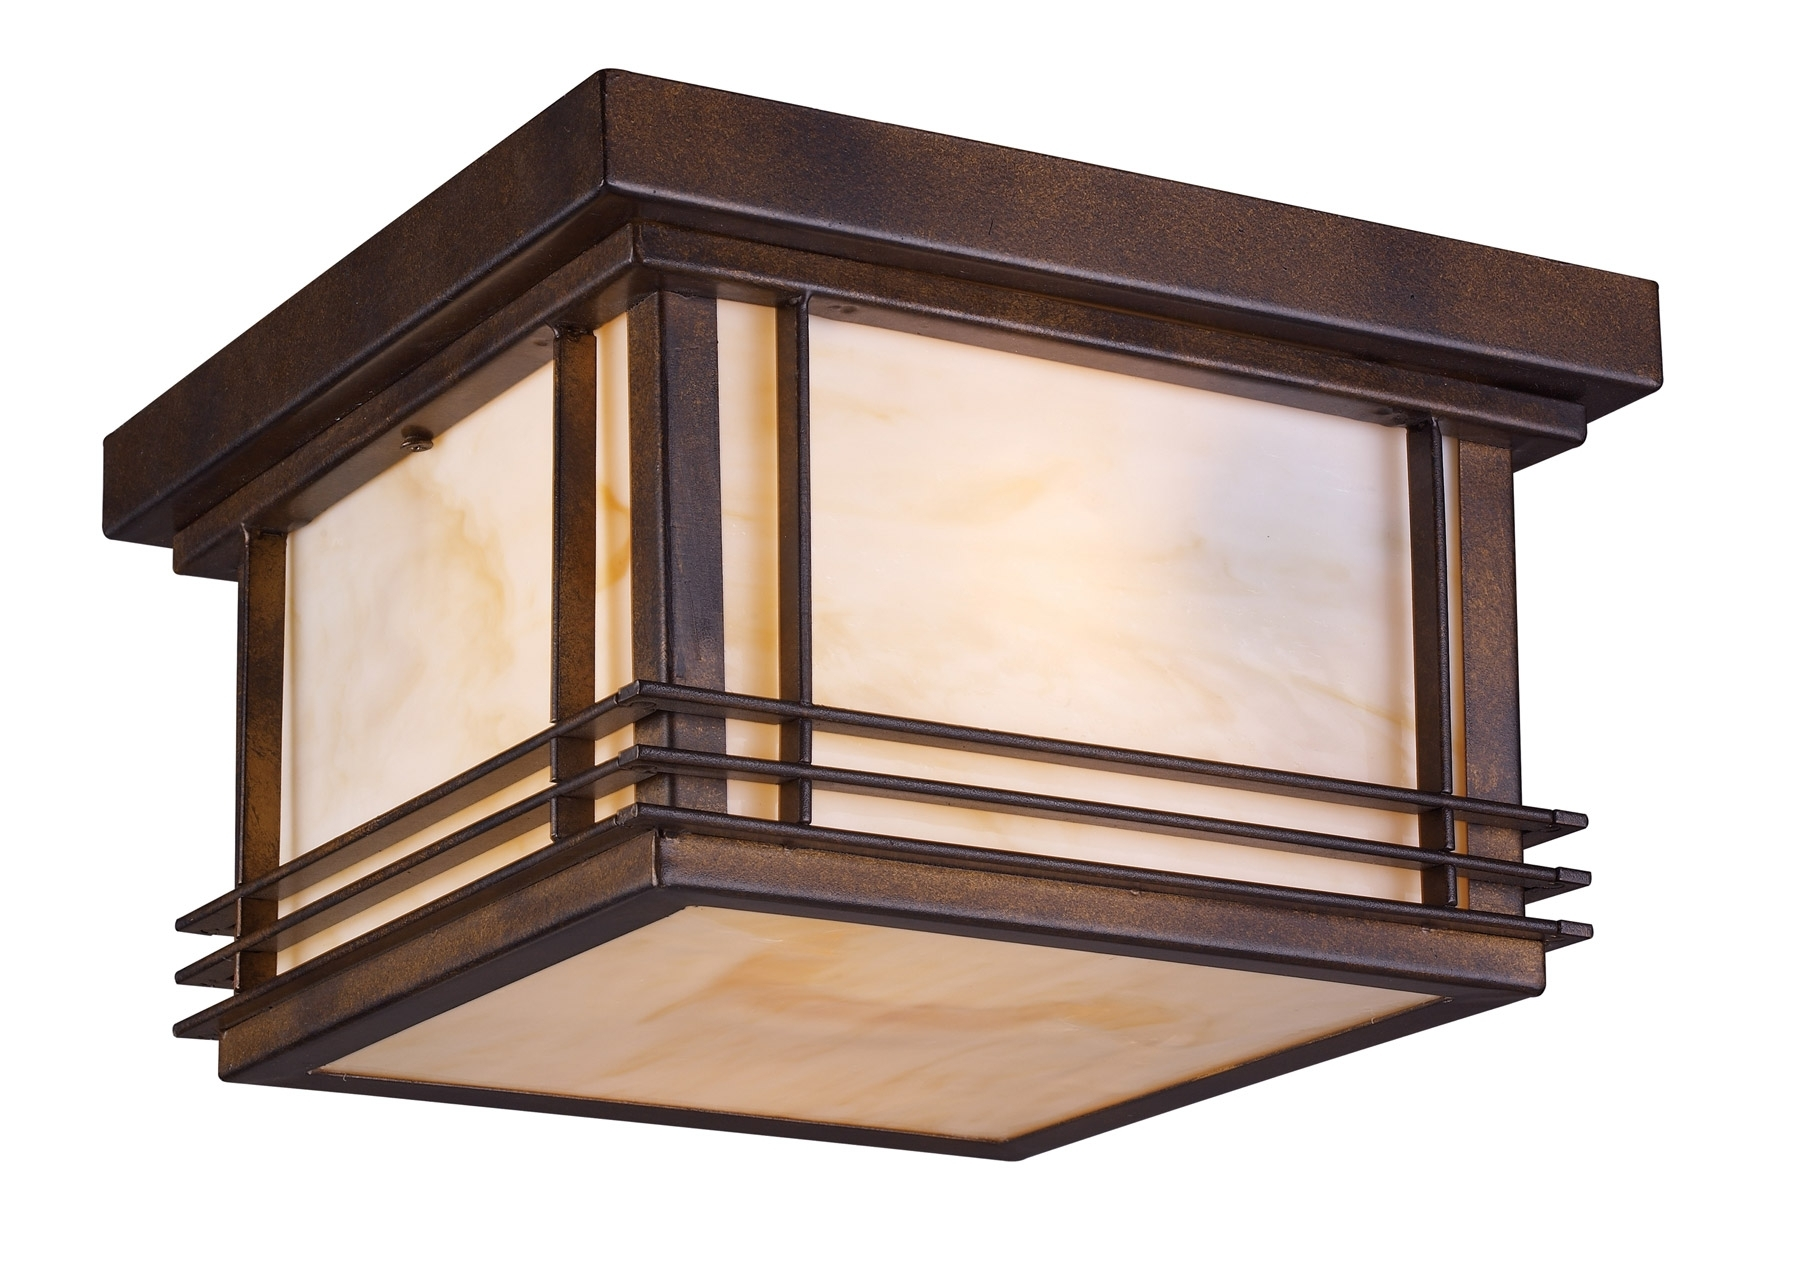 Most Recently Released Commercial Outdoor Ceiling Lighting Fixtures Intended For Light : Ceiling Lights Outdoor (View 16 of 20)